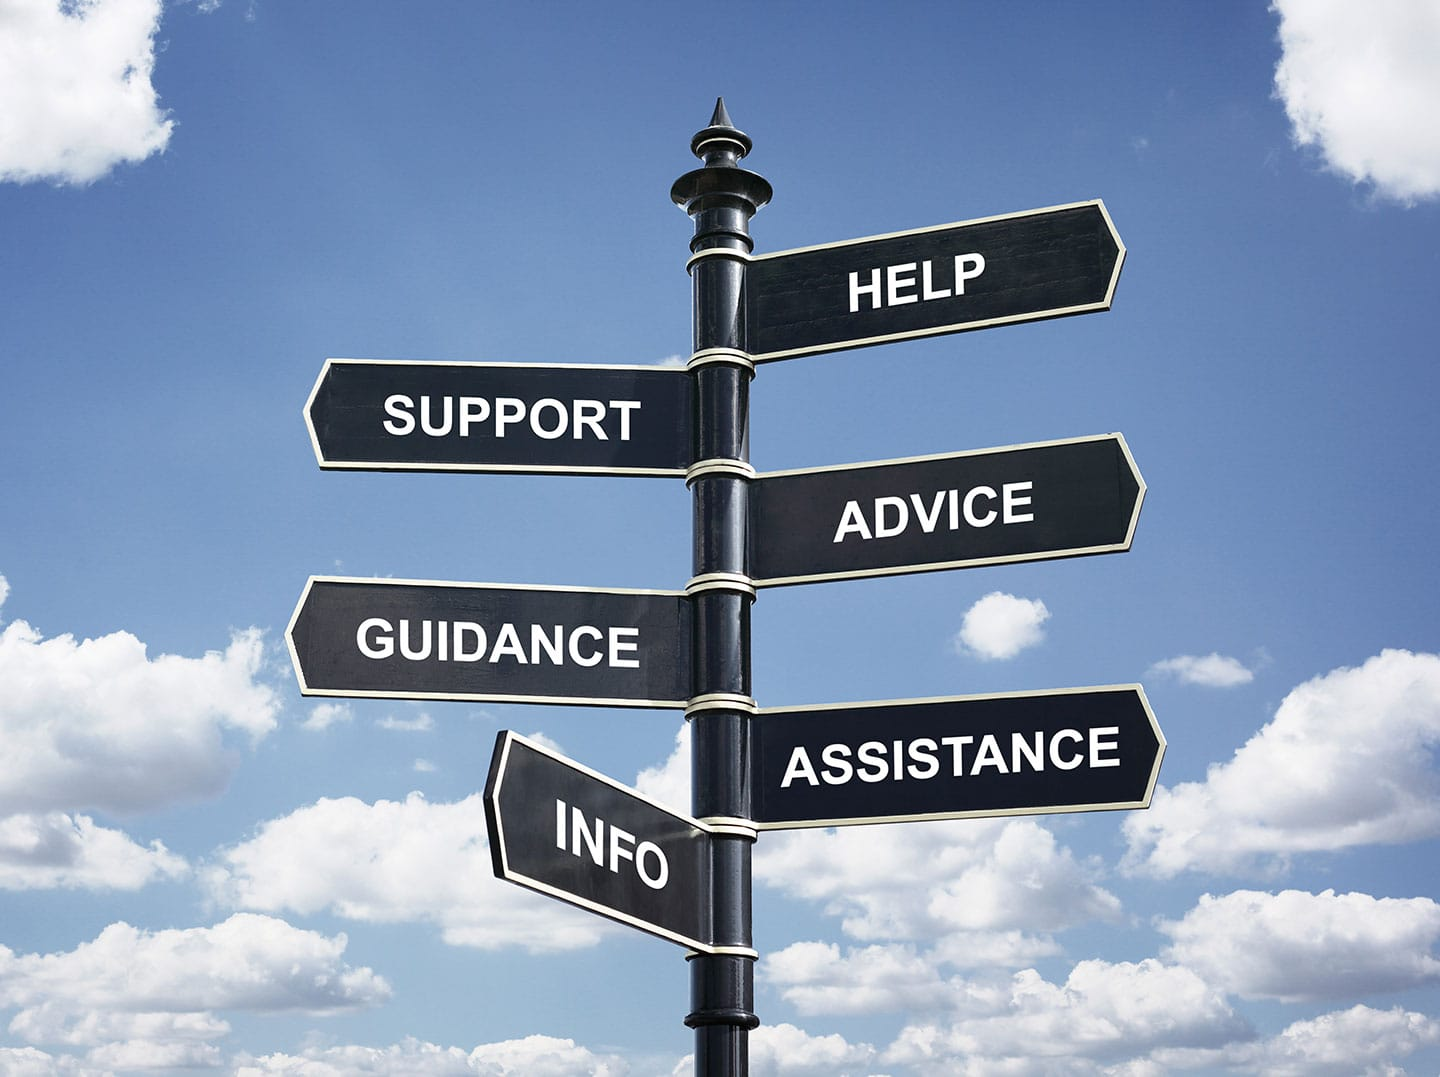 Signpost for help and support